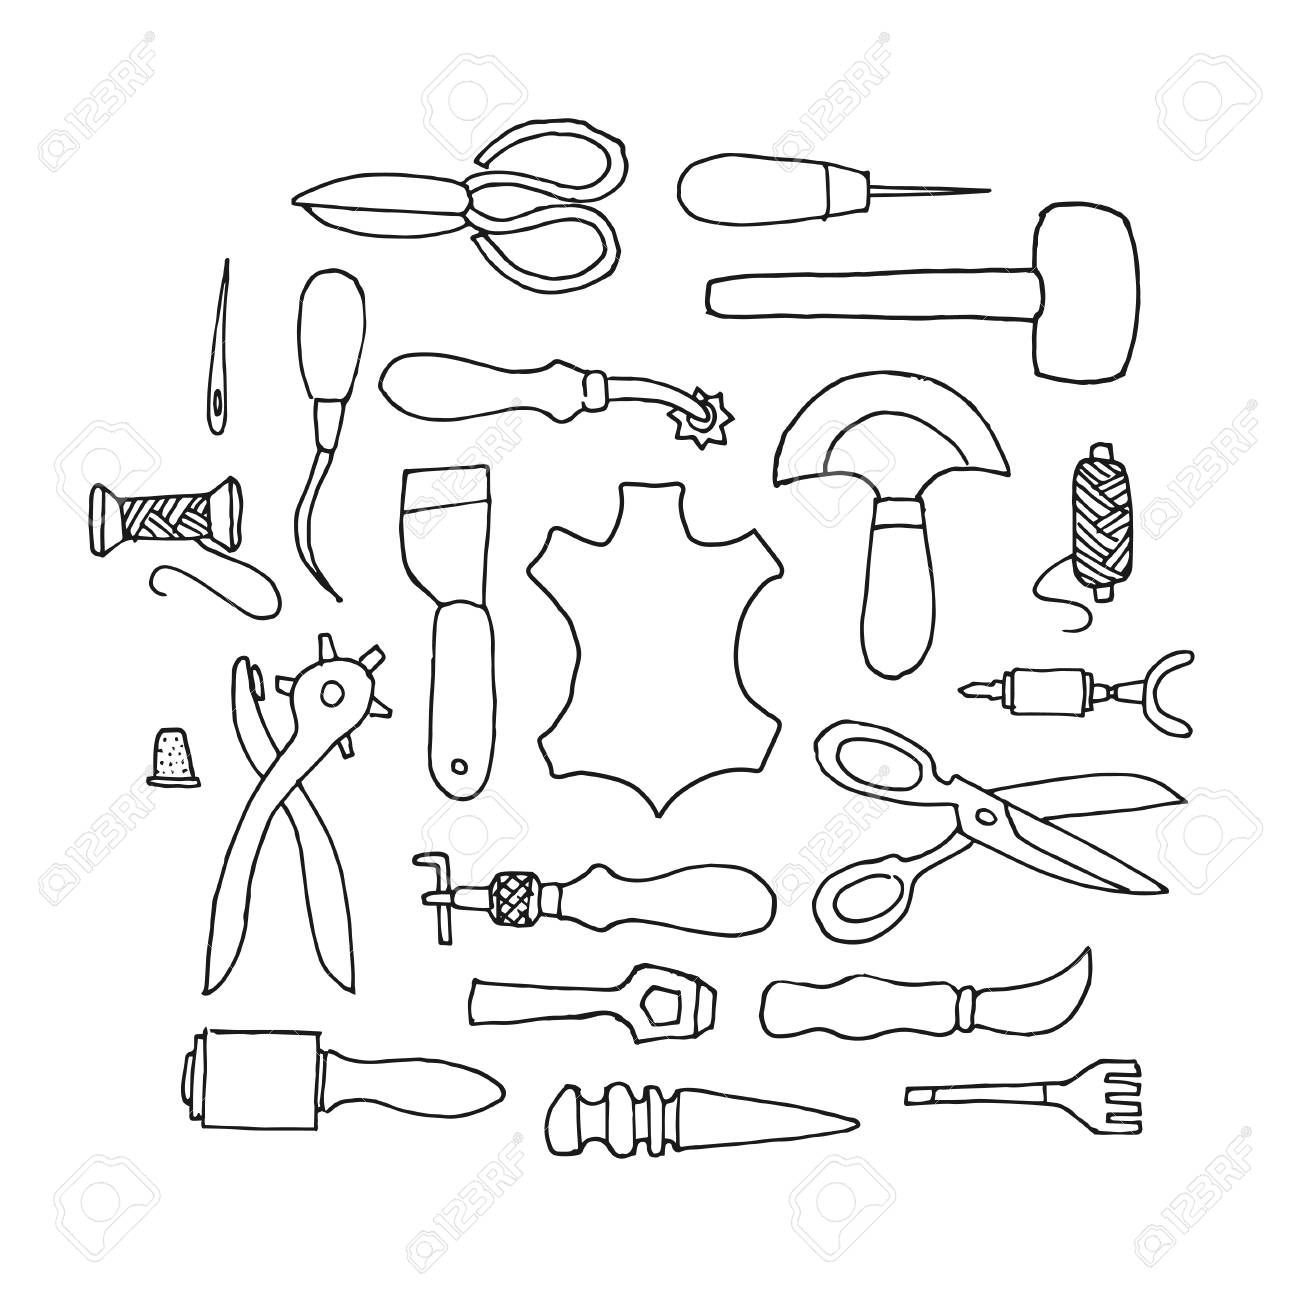 Hand drawn Leather working tools on white background - 37750415